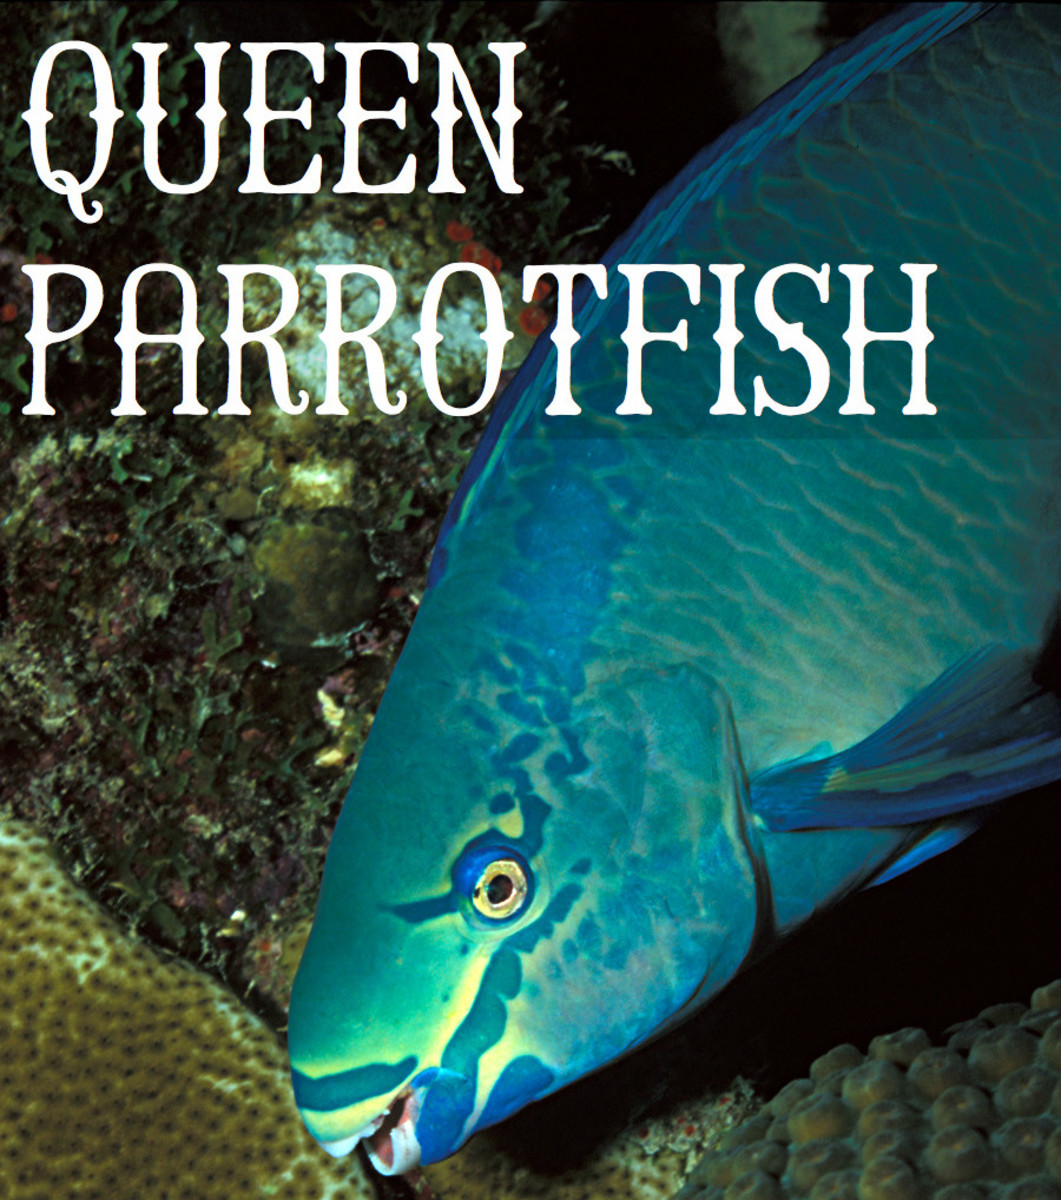 Queen Parrotfish. Licensed under CC BY 2.0 via Commons